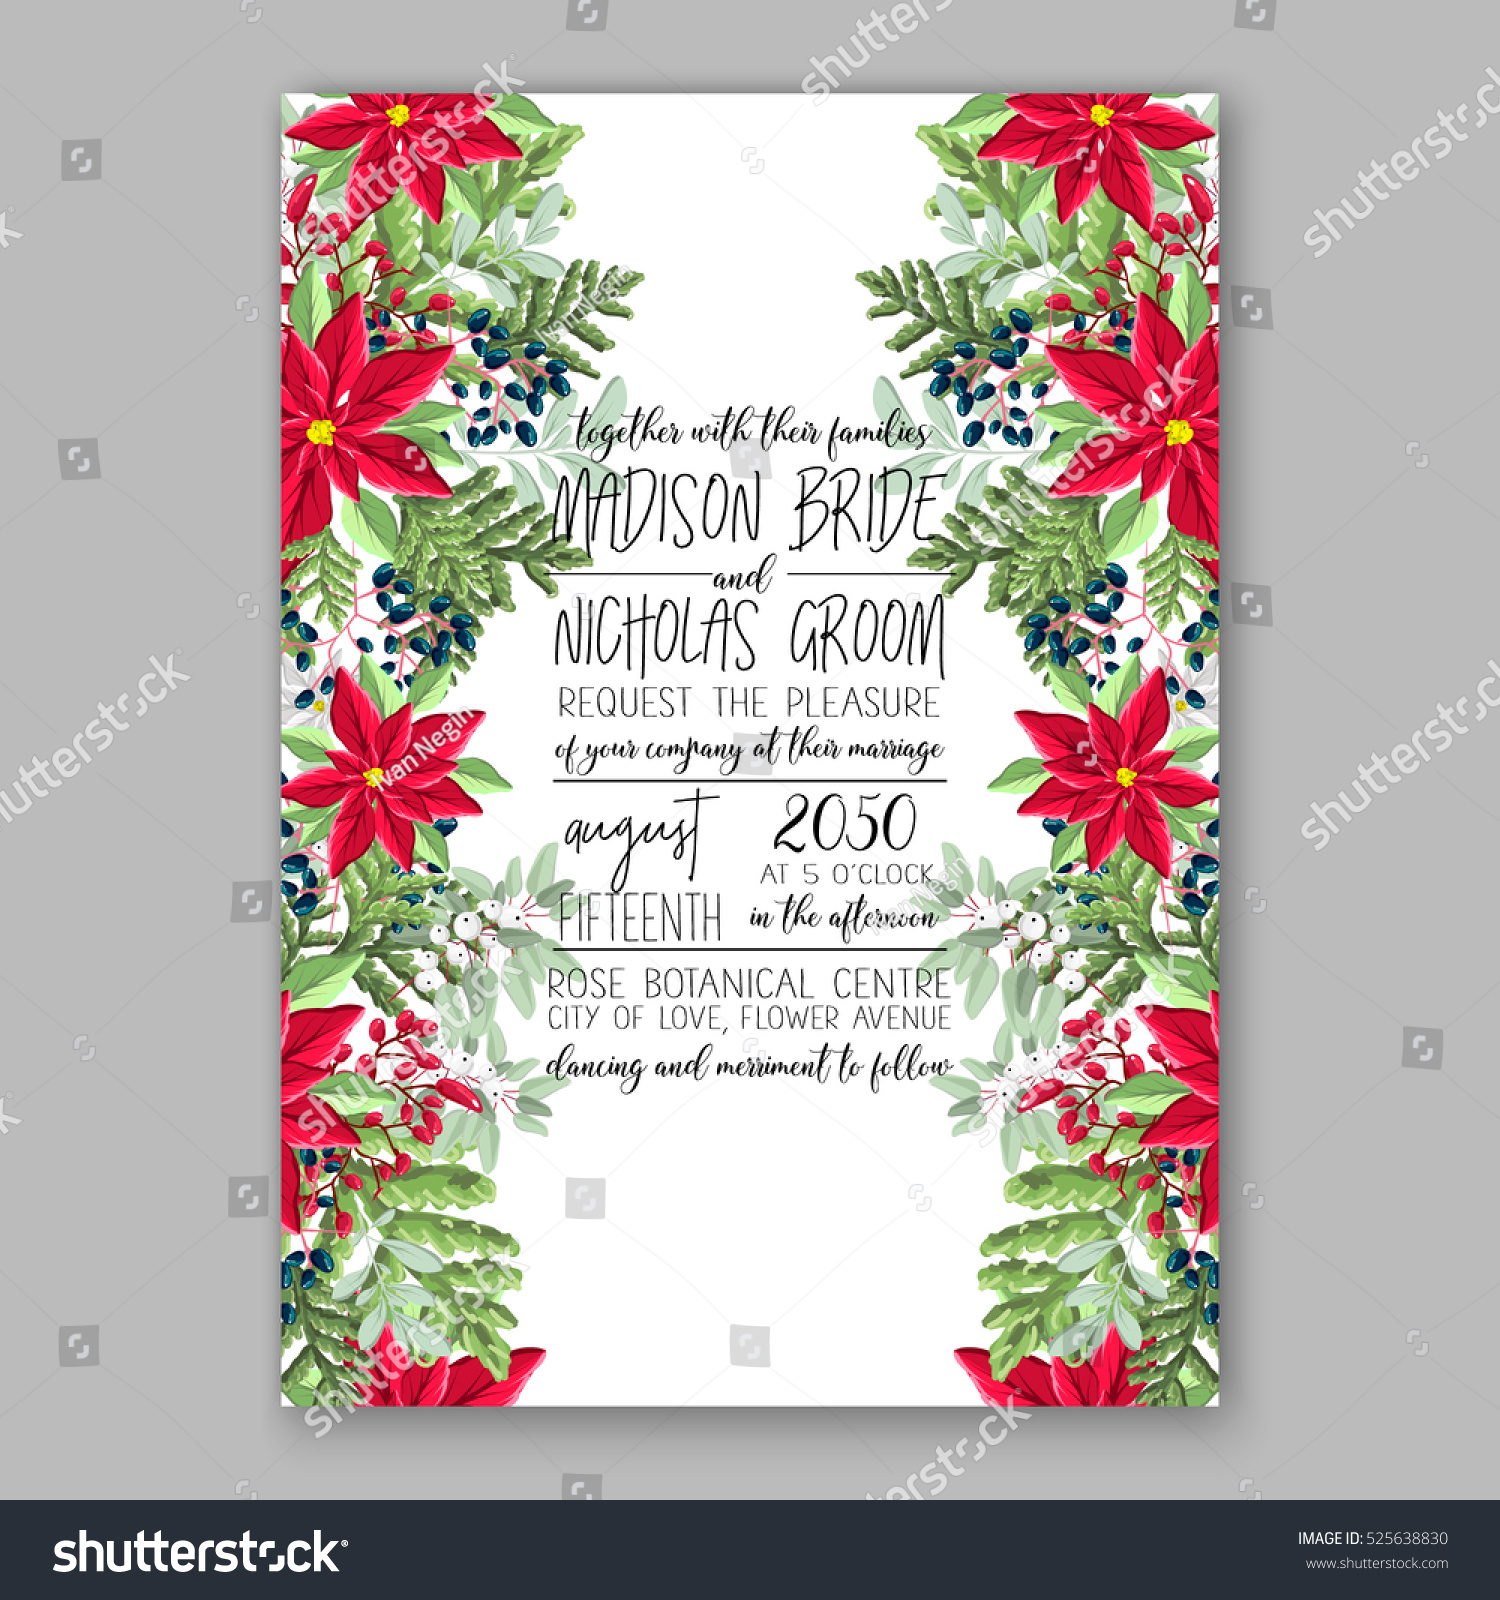 wedding invitation ornament wedding invitation ornament